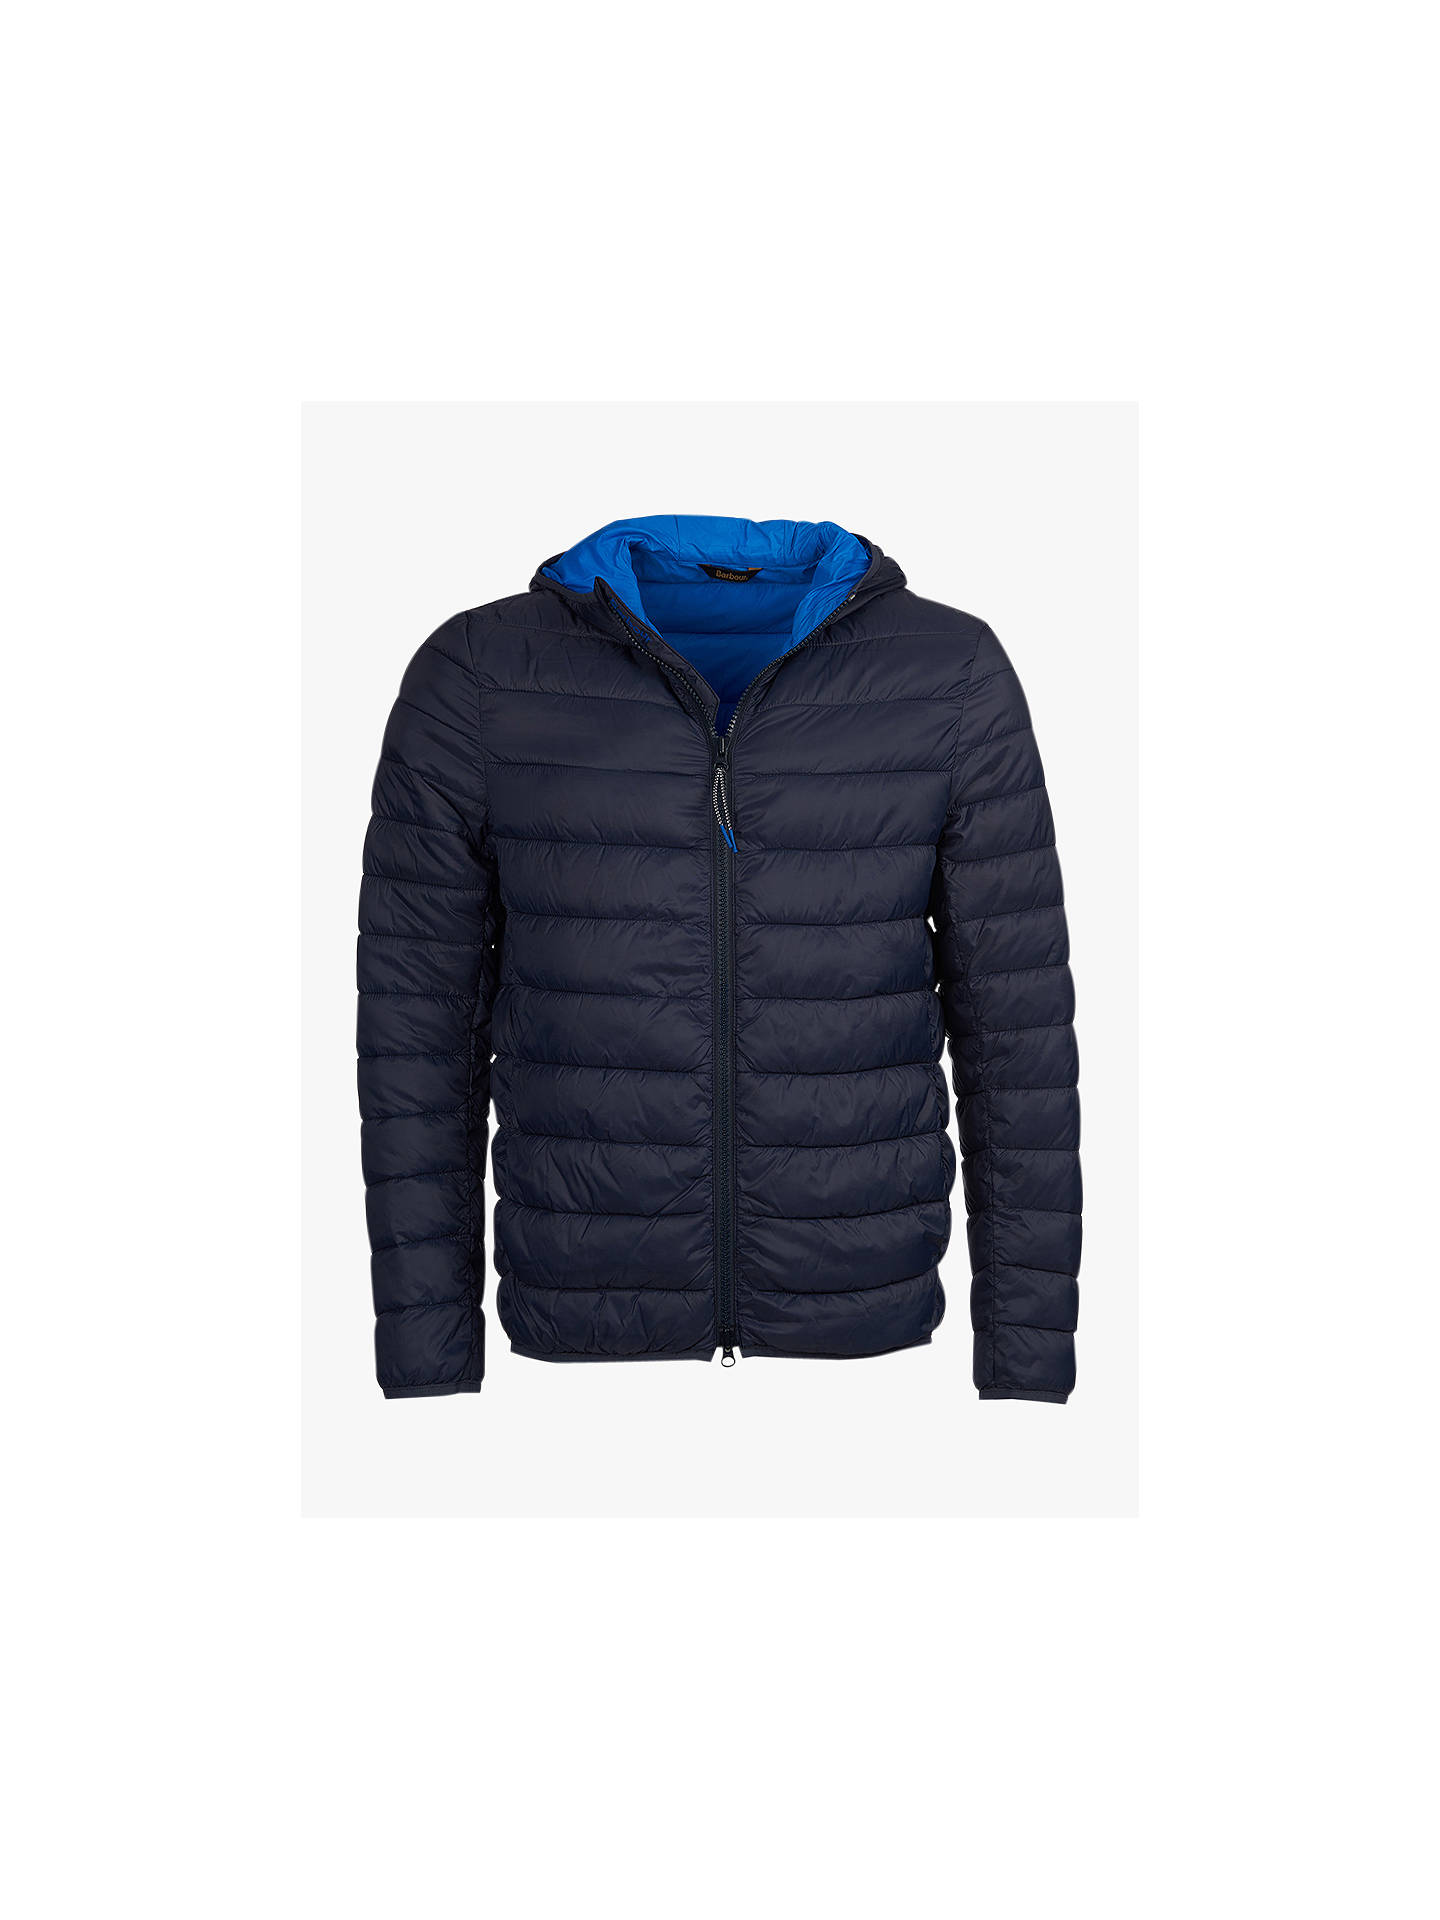 Barbour Trawl Quilted Jacket at John Lewis   Partners 4009e942d